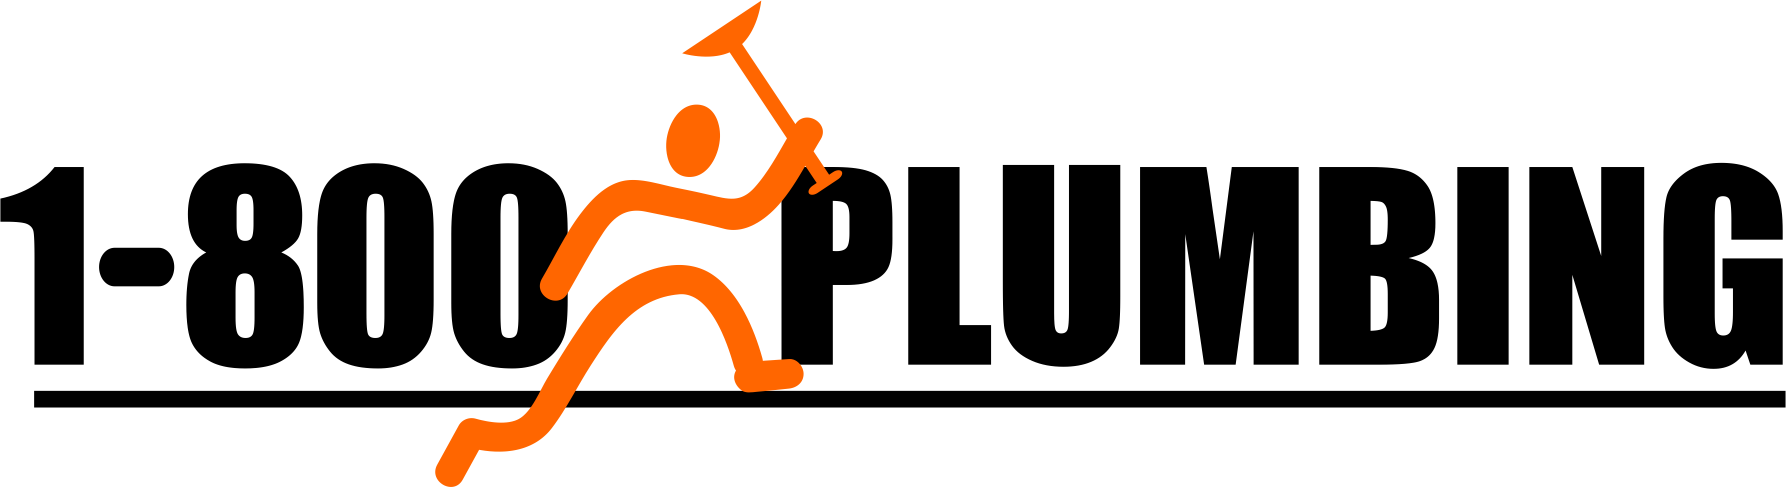 Plumbers in TX Austin 78701 Excalibur Plumbing 401 Congress Ave Suite 1540 (512)259-7222